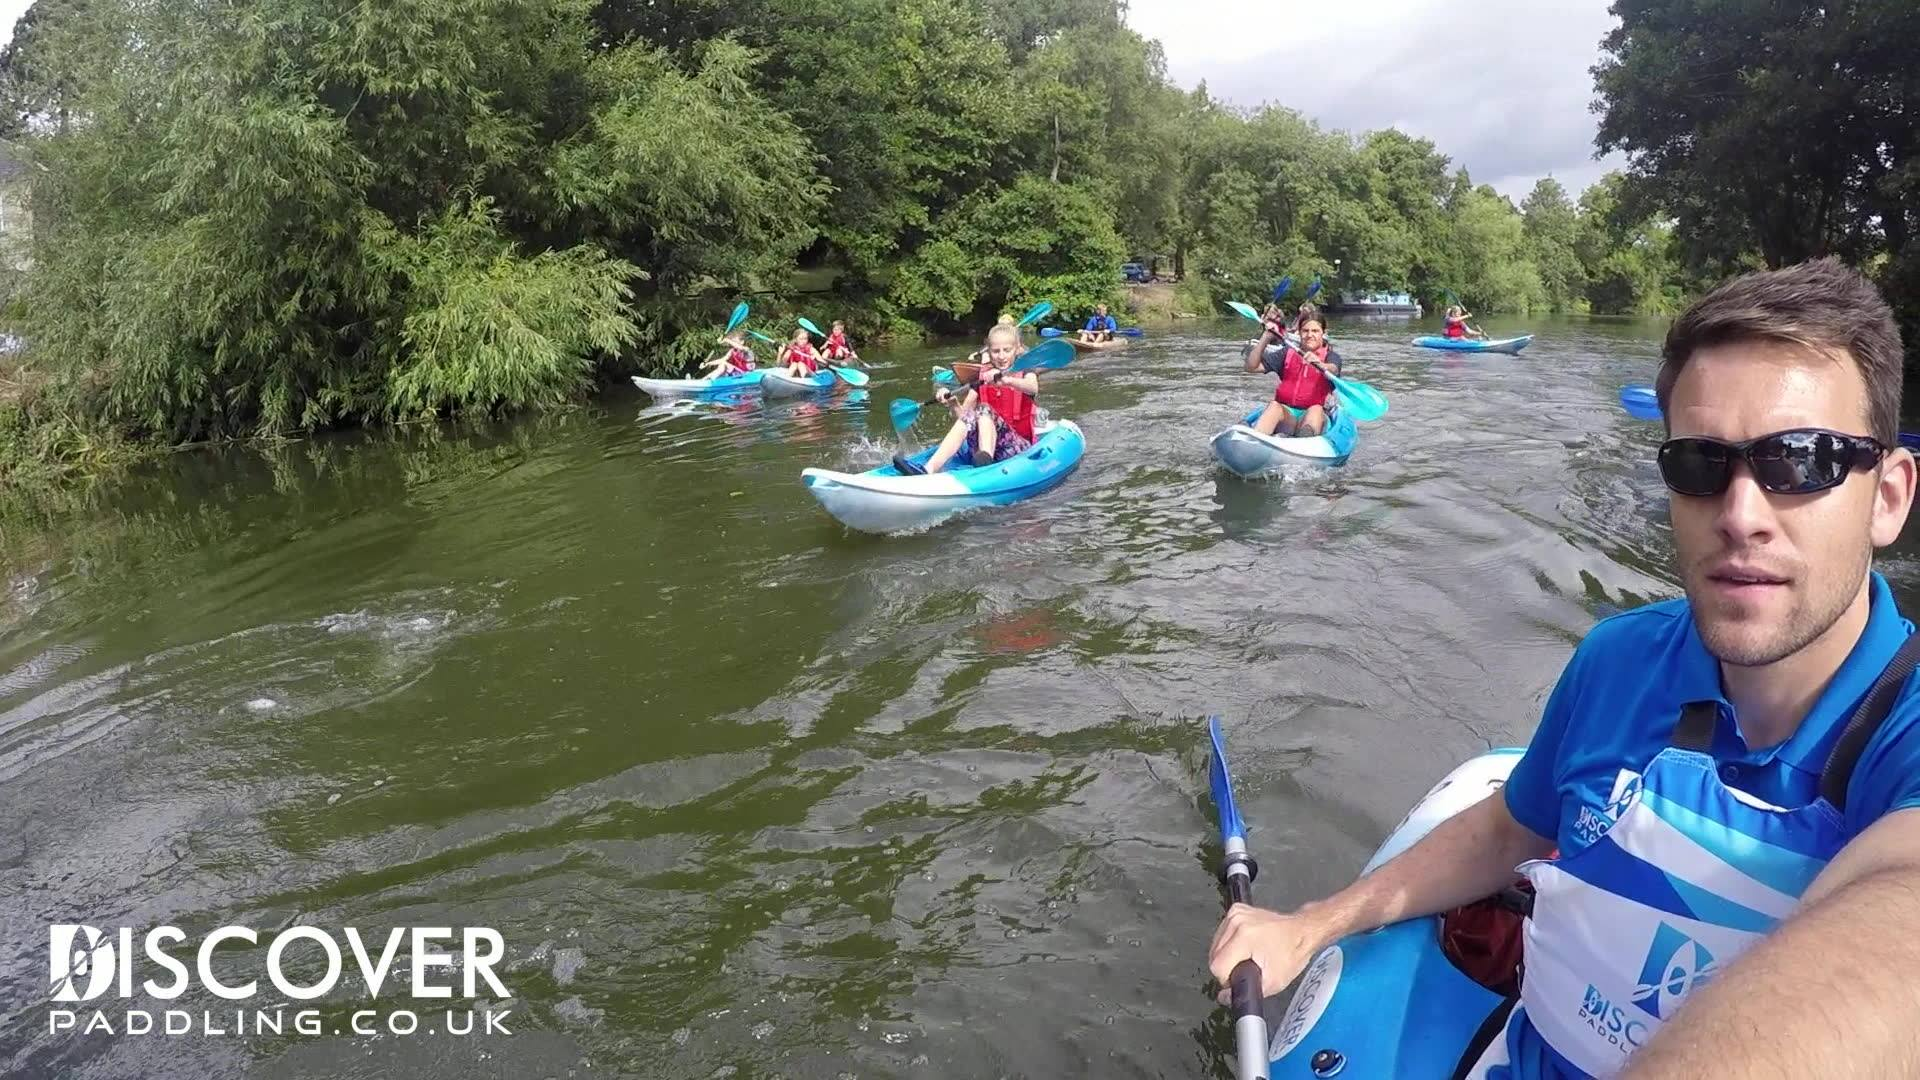 Discover Paddling 1-2-3 course Summer 2018